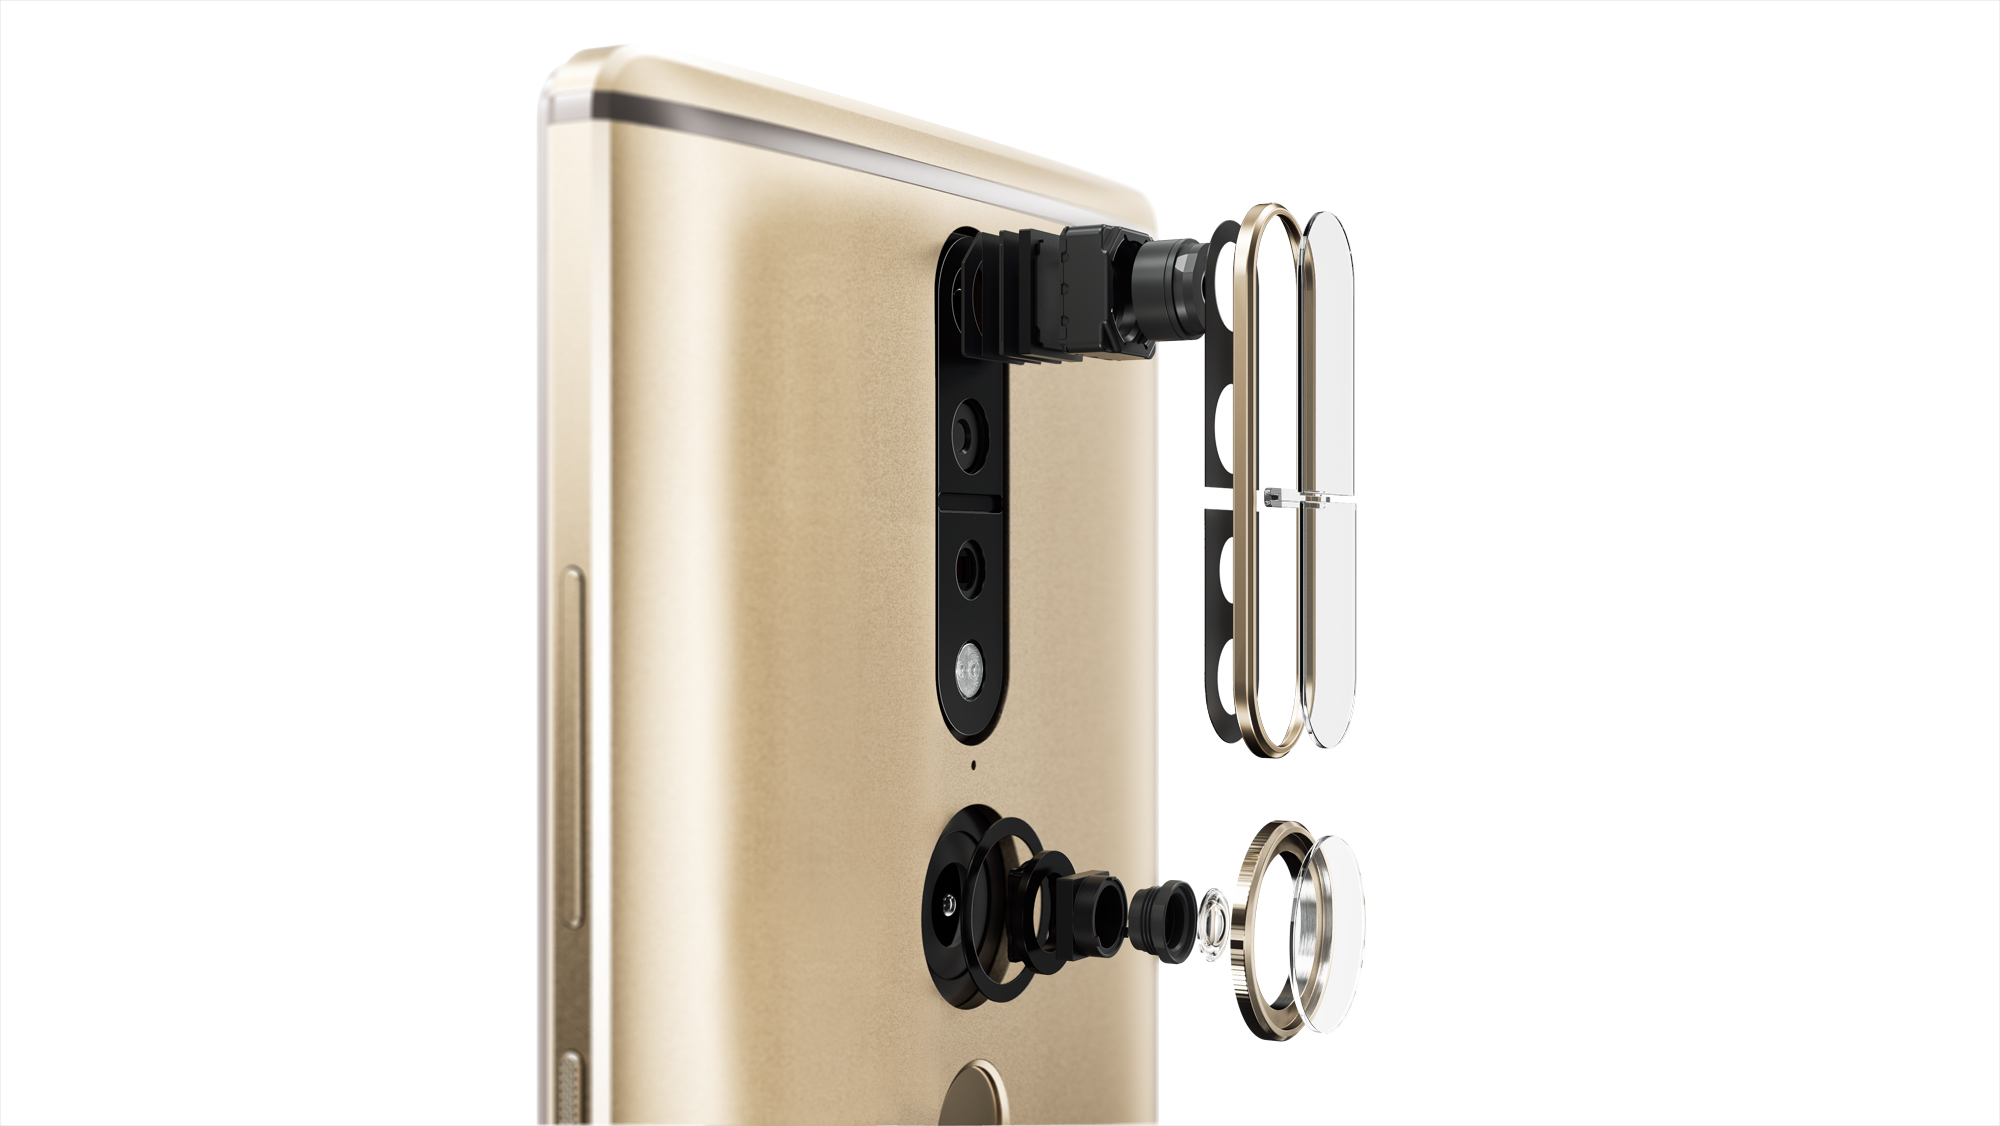 A close-up of the Phab2 Pro.